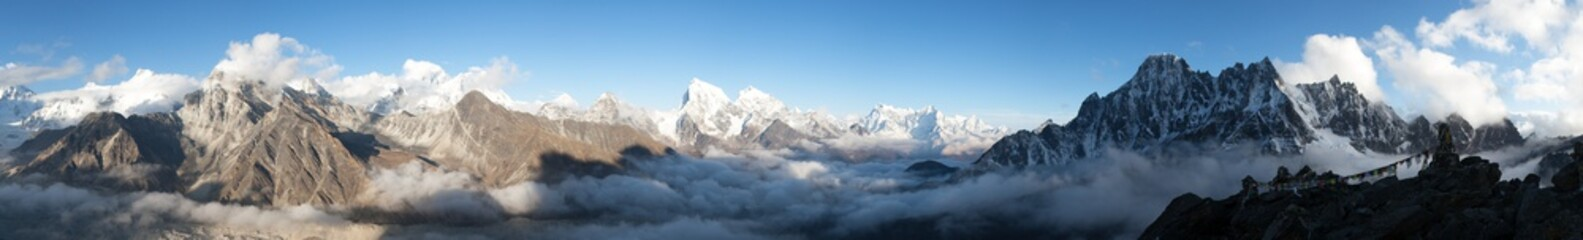 panorama Mount Everest, Lhotse, Makalu i Cho Oyu